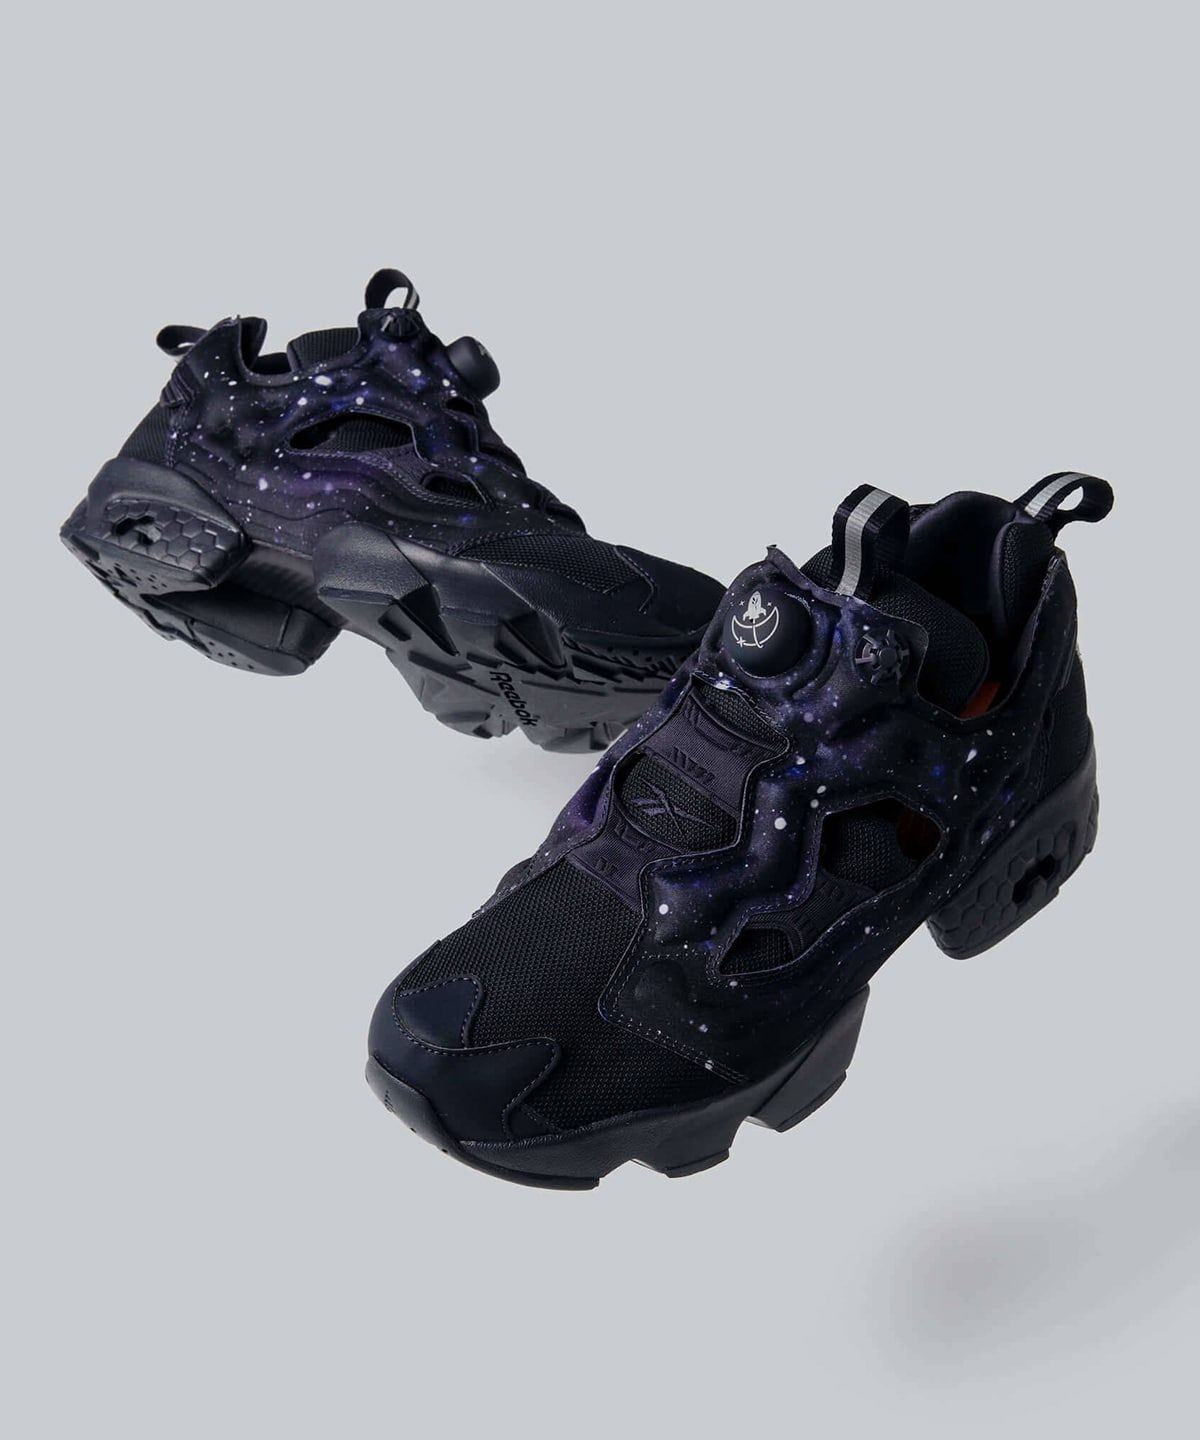 Japan's ZOZOTOWN Gets Intergalactic on the Instapump Fury